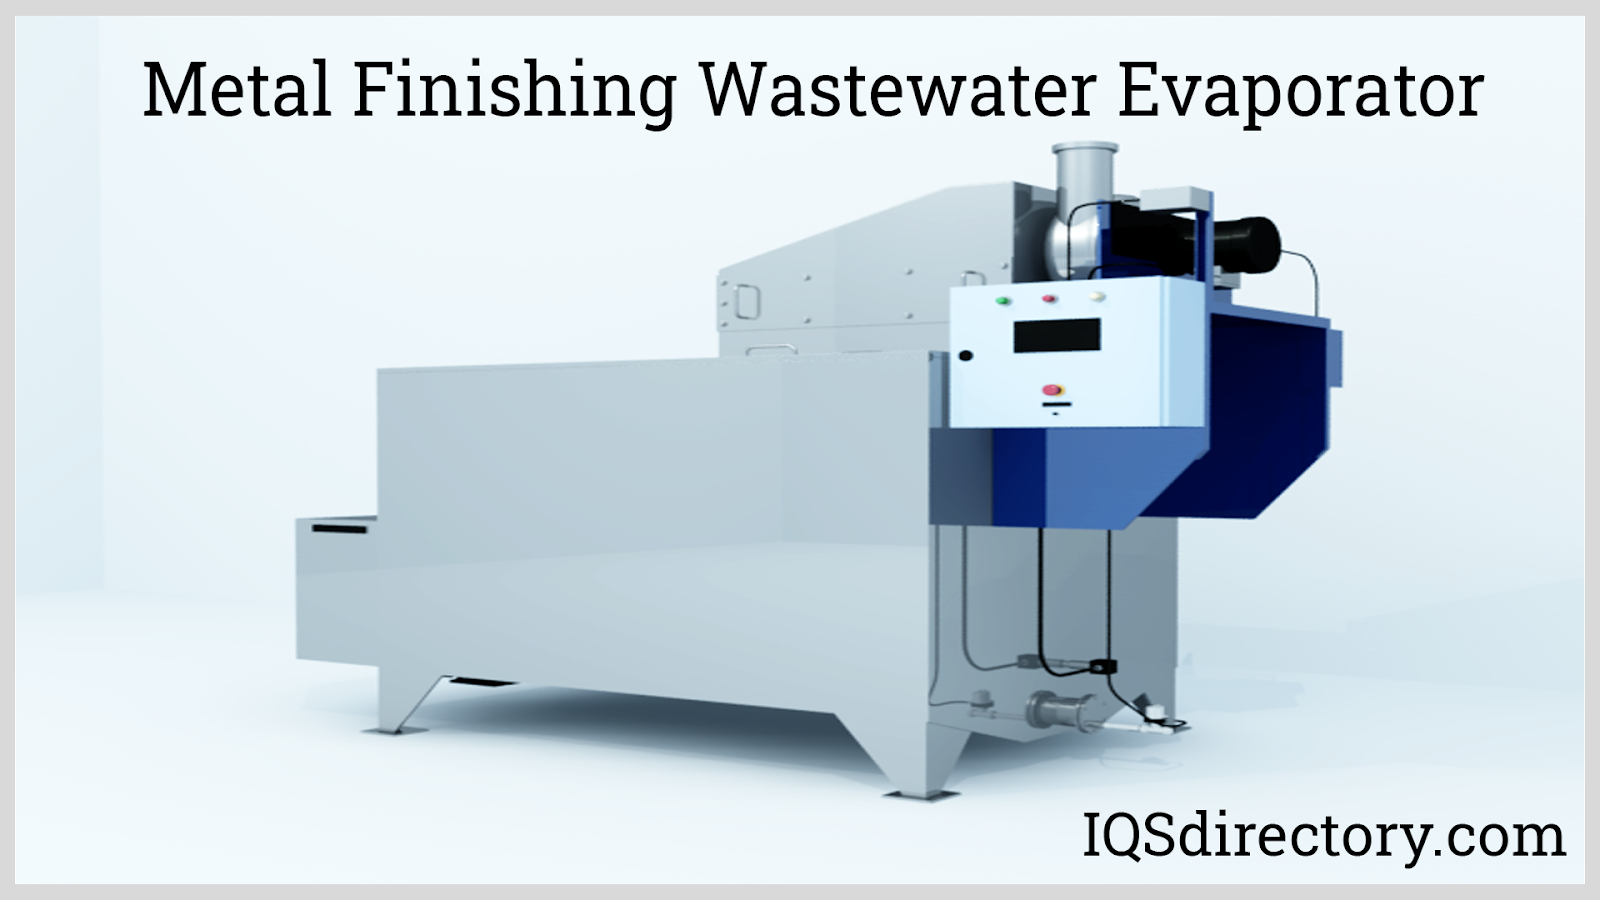 Metal Finishing Wastewater Evaporator